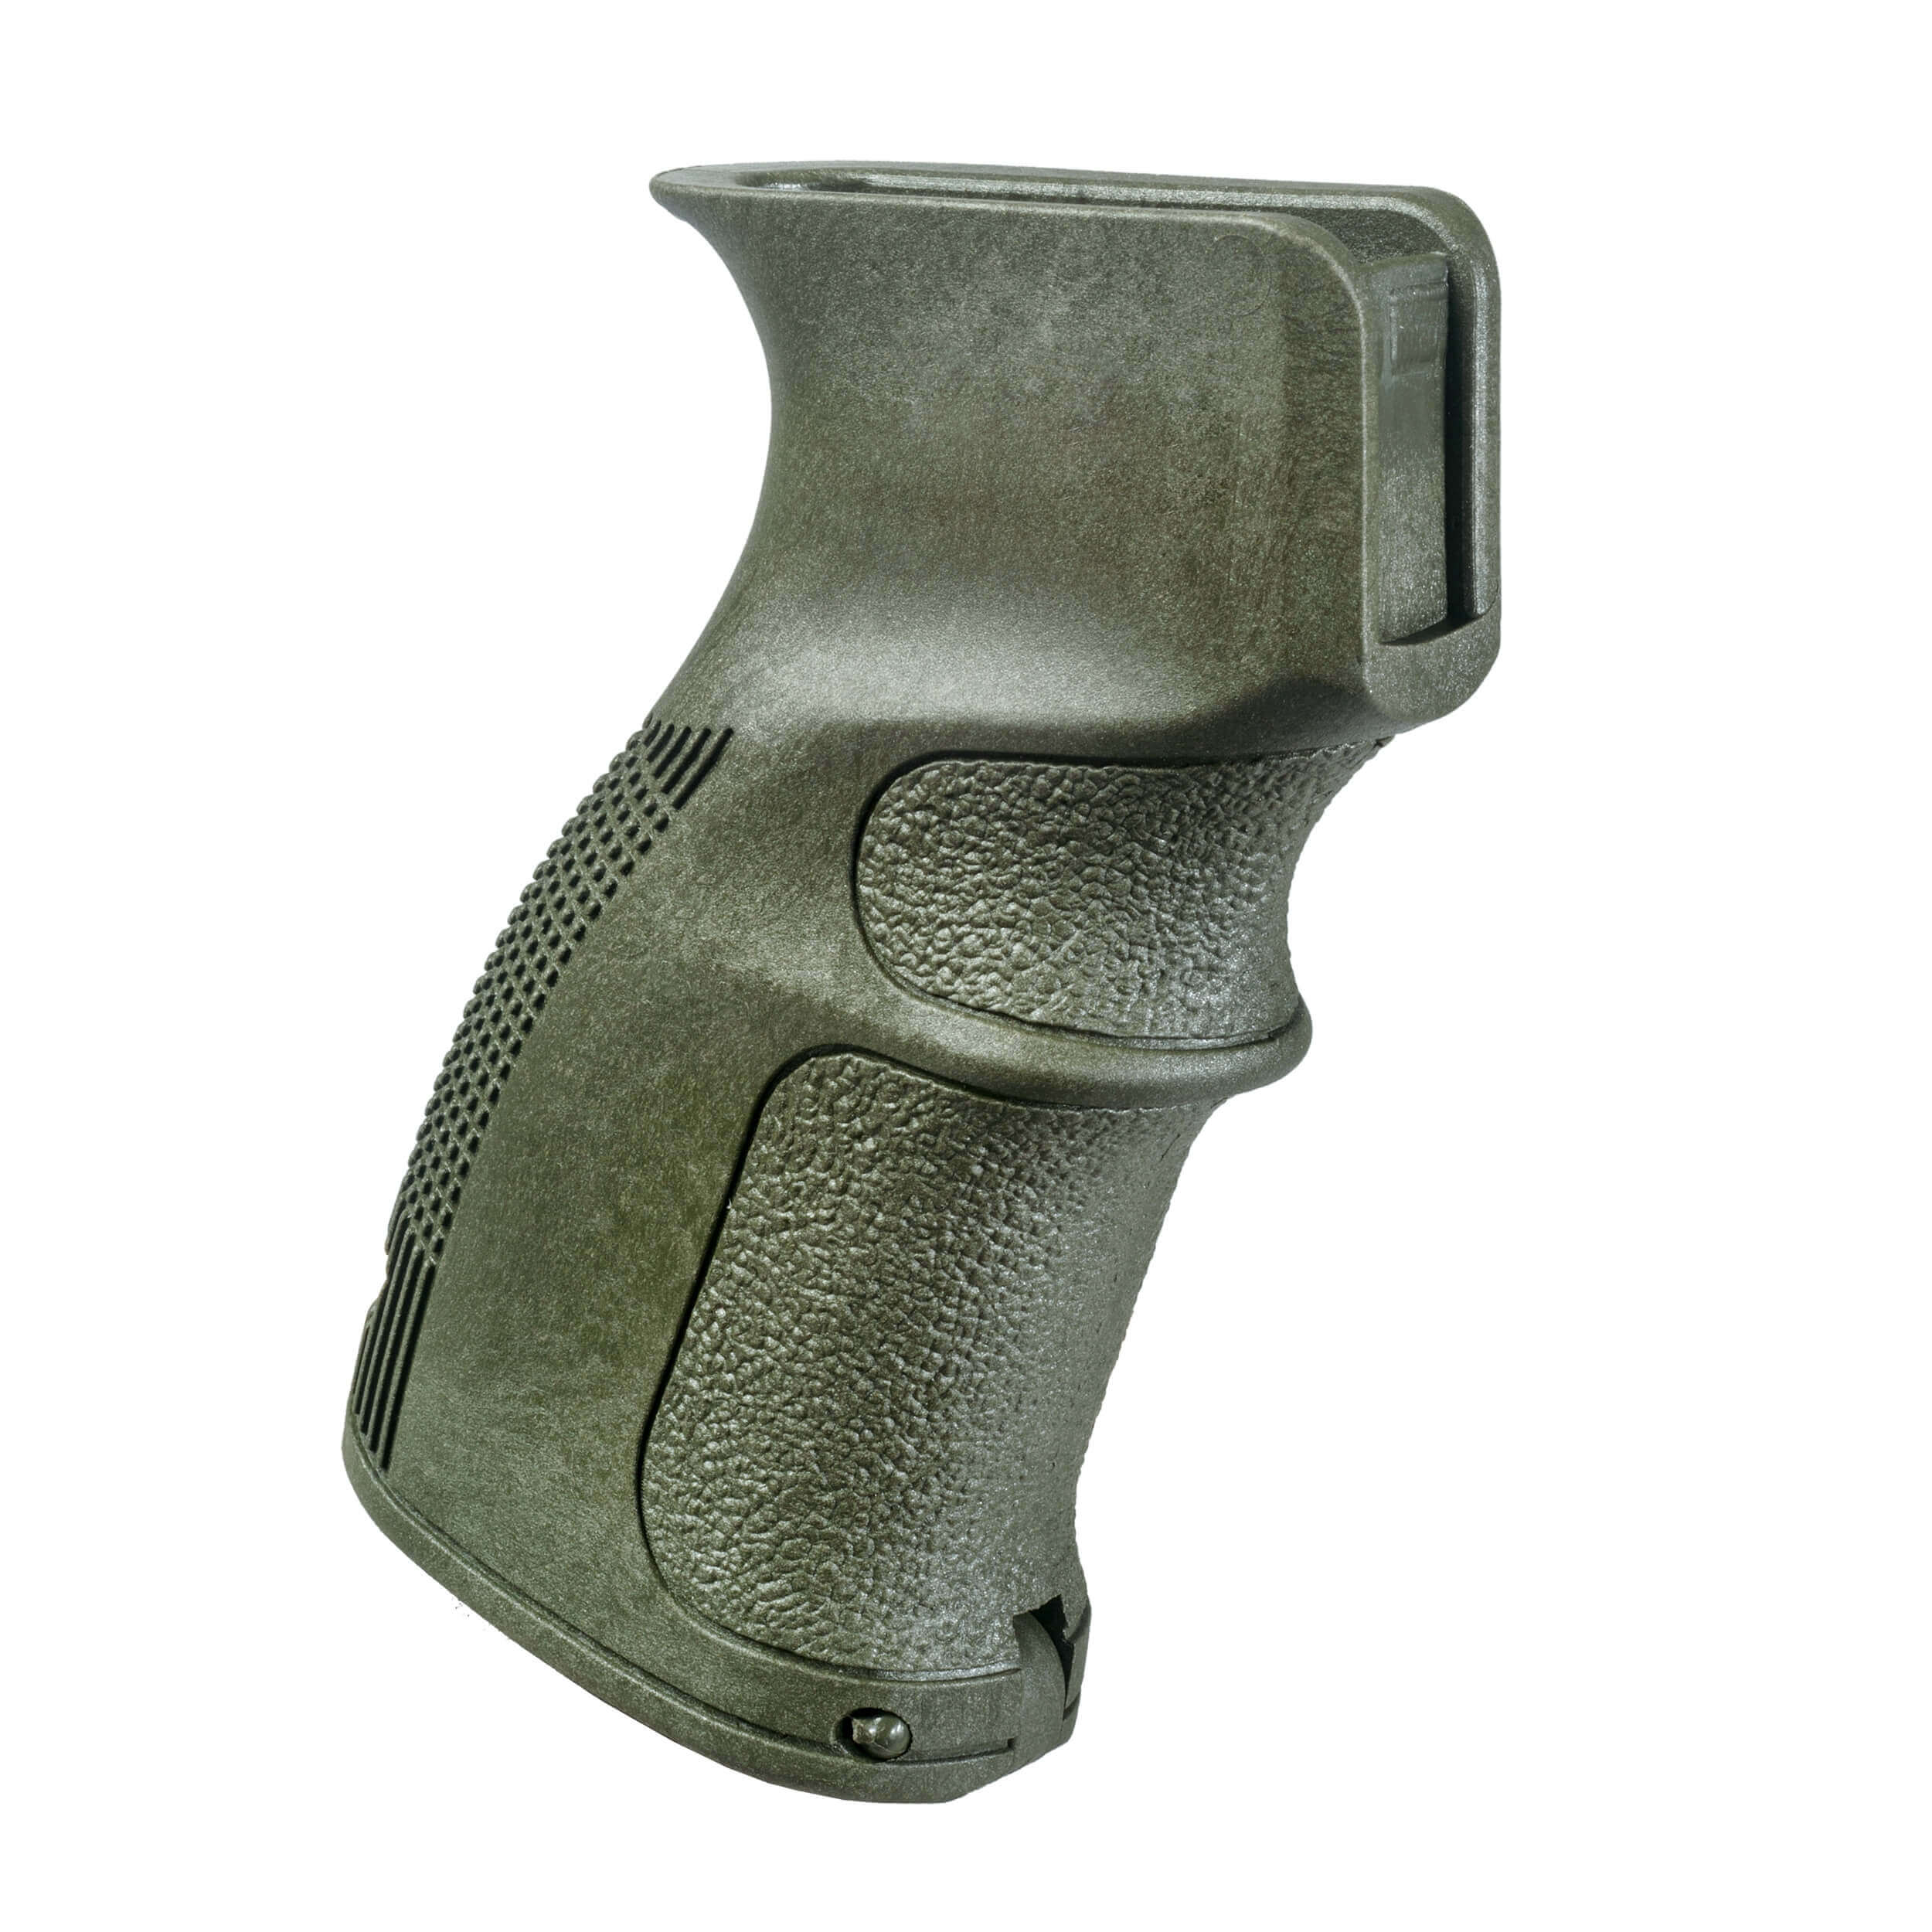 AG-47 Pistol Grip for AK-47 / 74